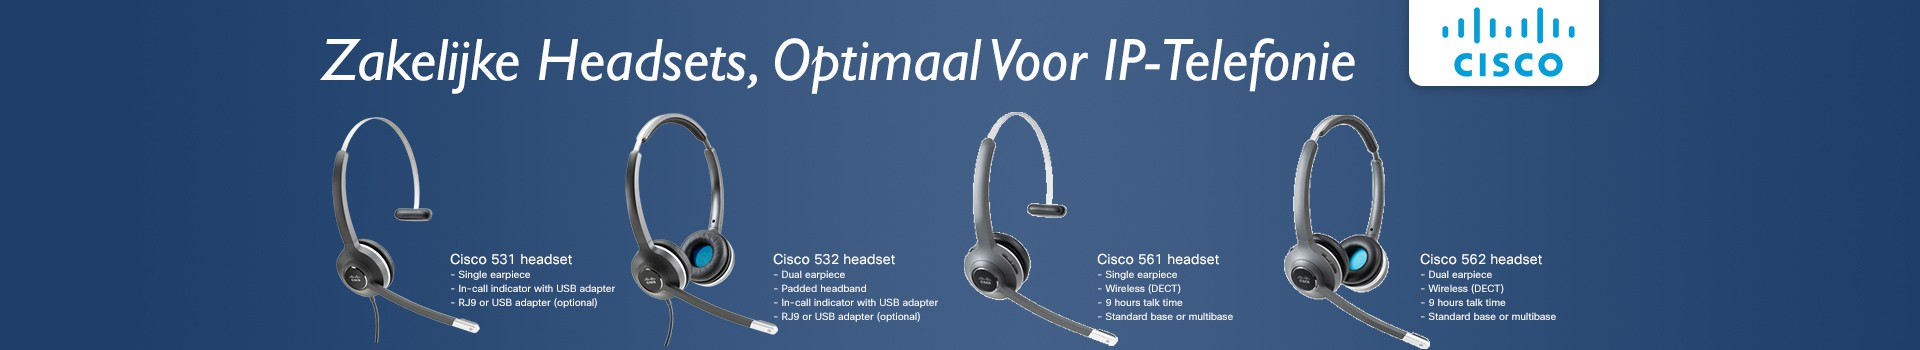 cisco headsets 500 serie